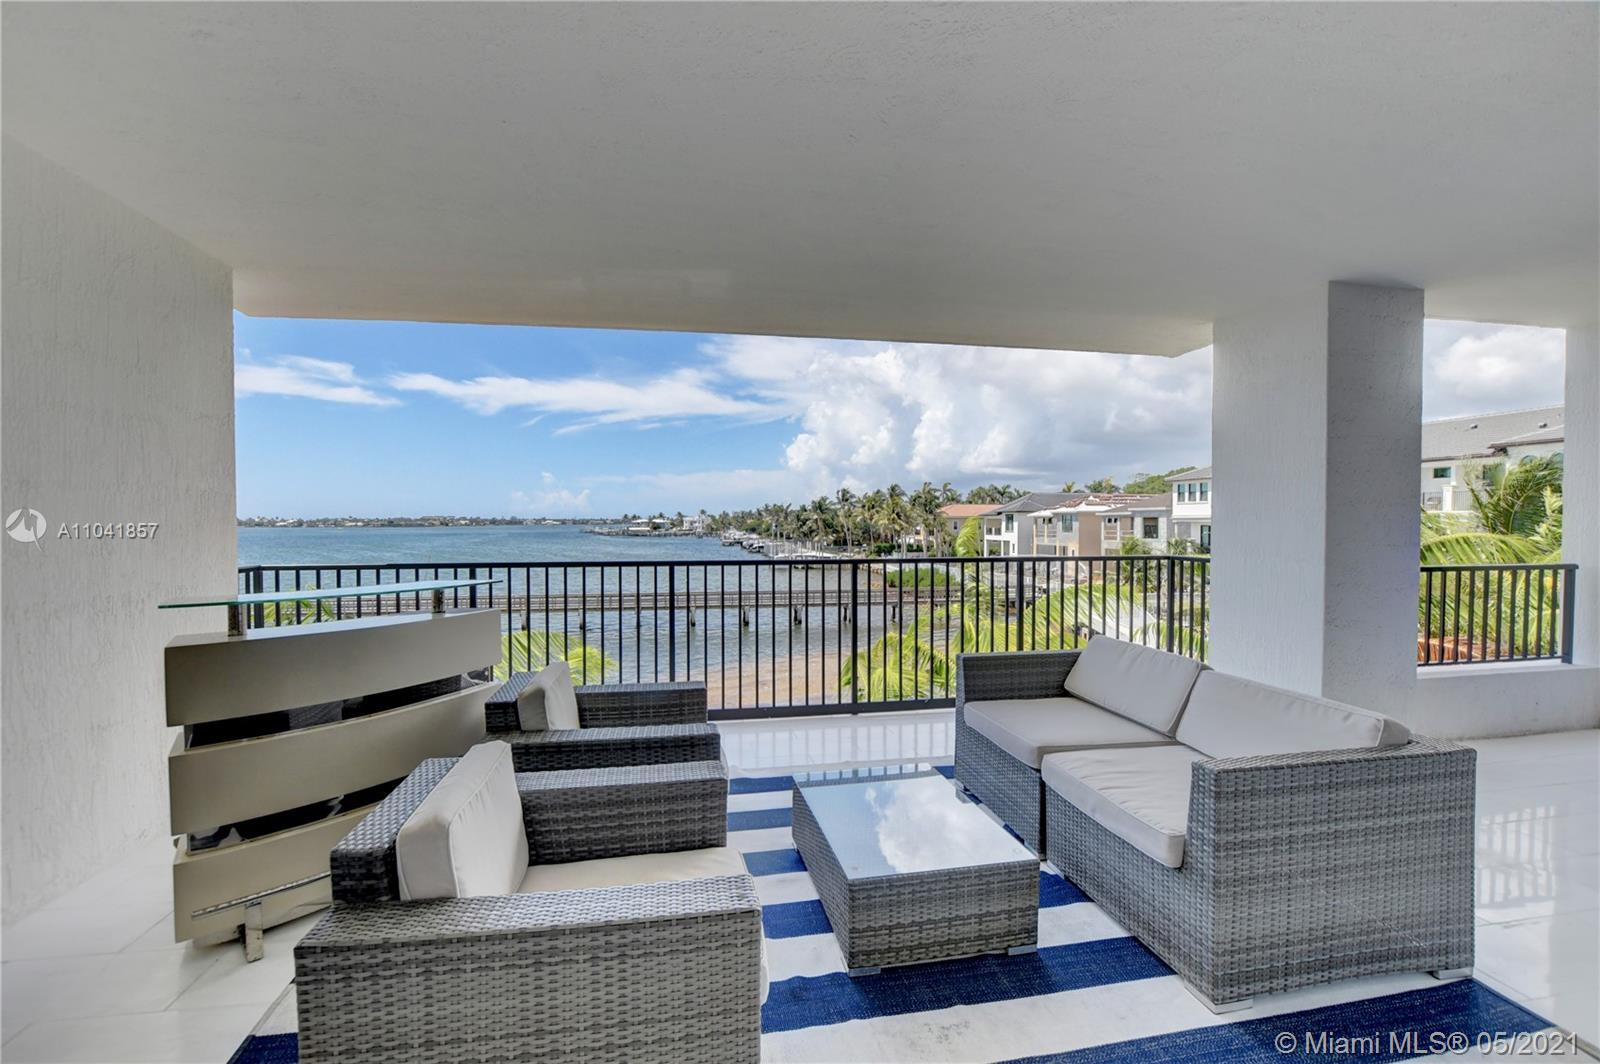 Intracoastal Views for miles in this rarely available SE exposure condo in Boynton Beach gated commu